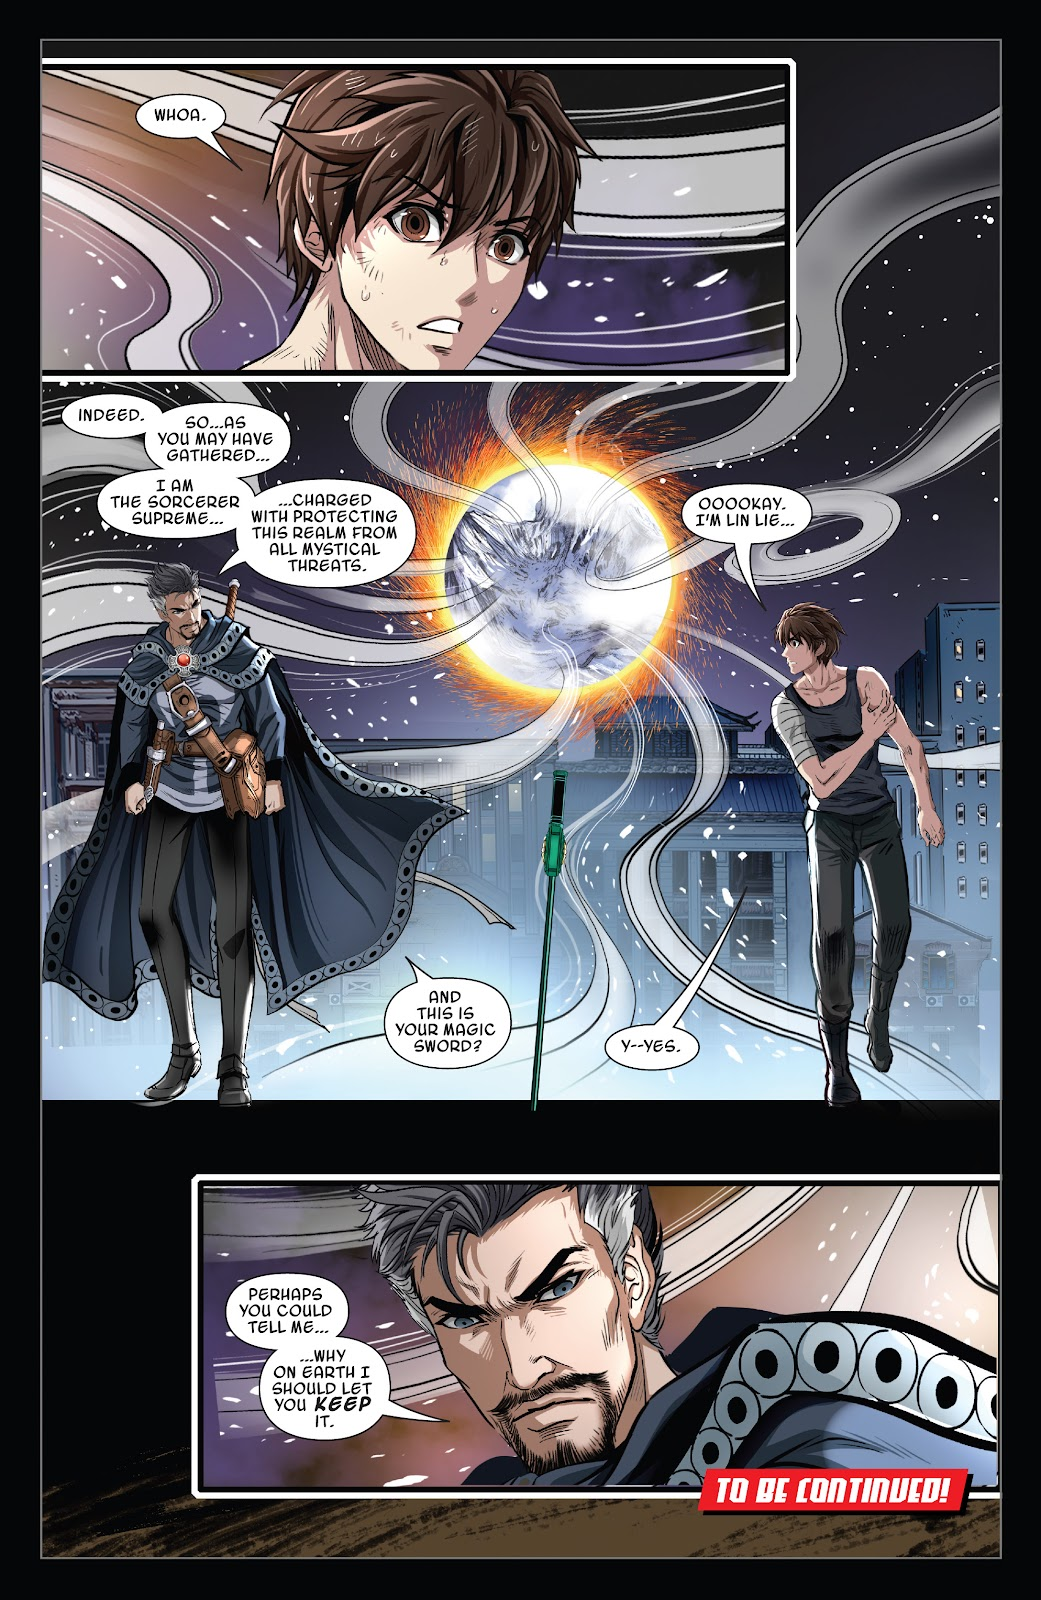 Read online Sword Master comic -  Issue #5 - 22